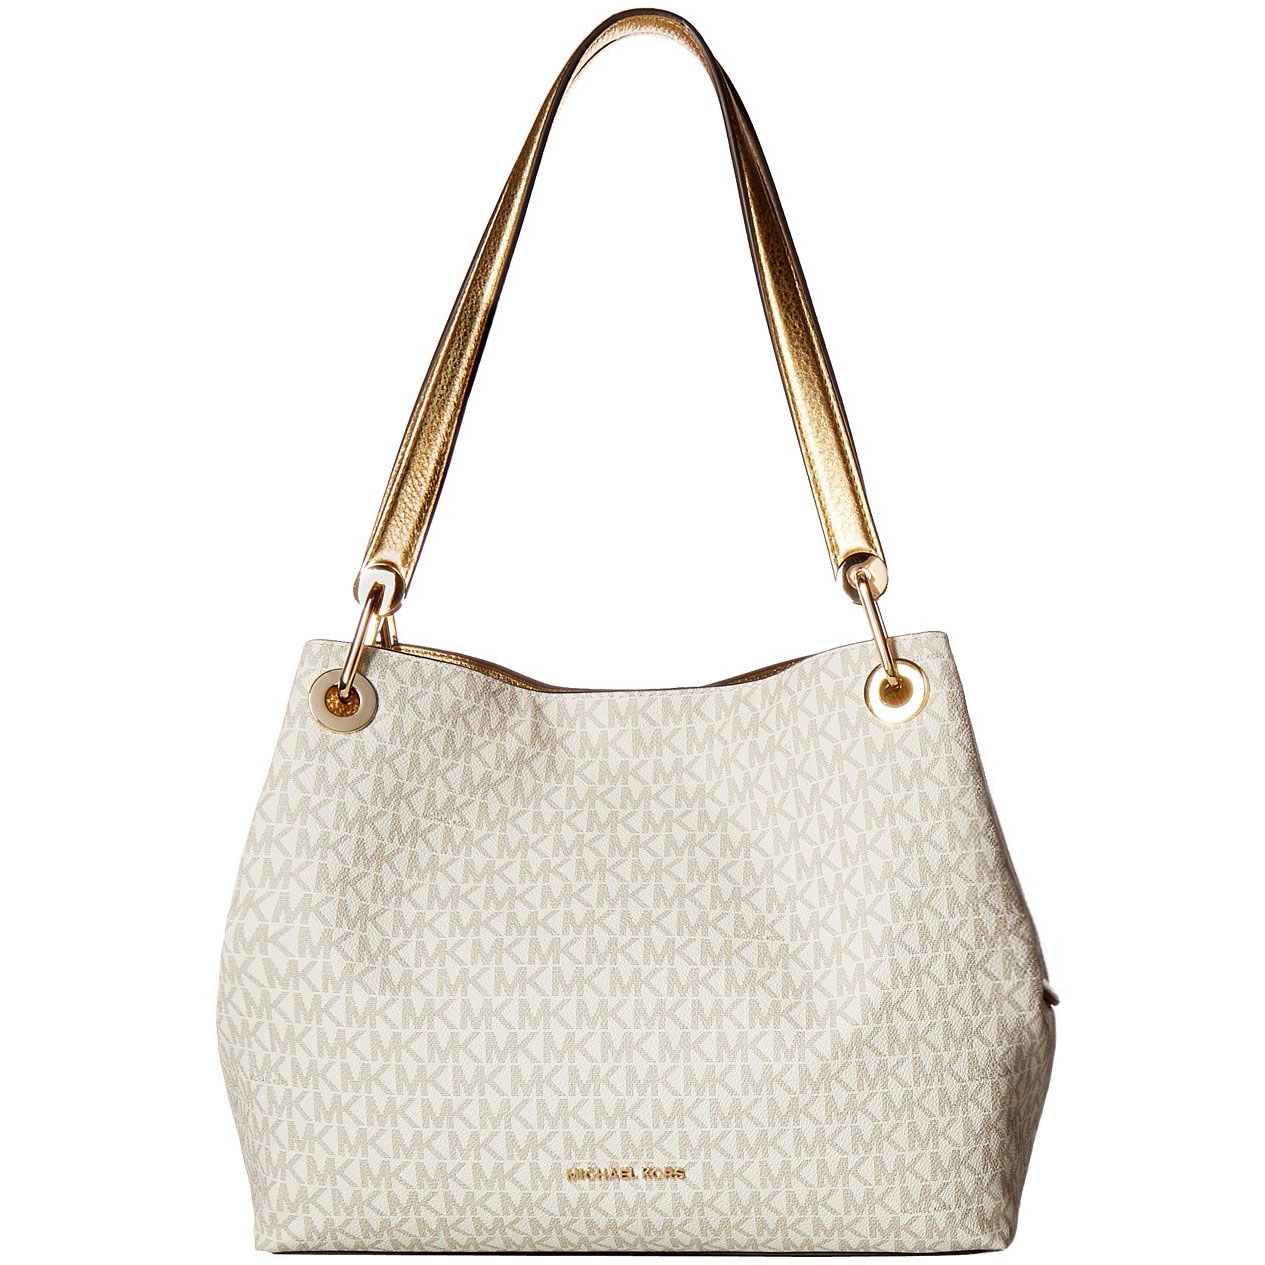 Michael Kors Raven Large Shoulder Tote Bag Vanilla Cream White / Gold # 30H7MRXE3B